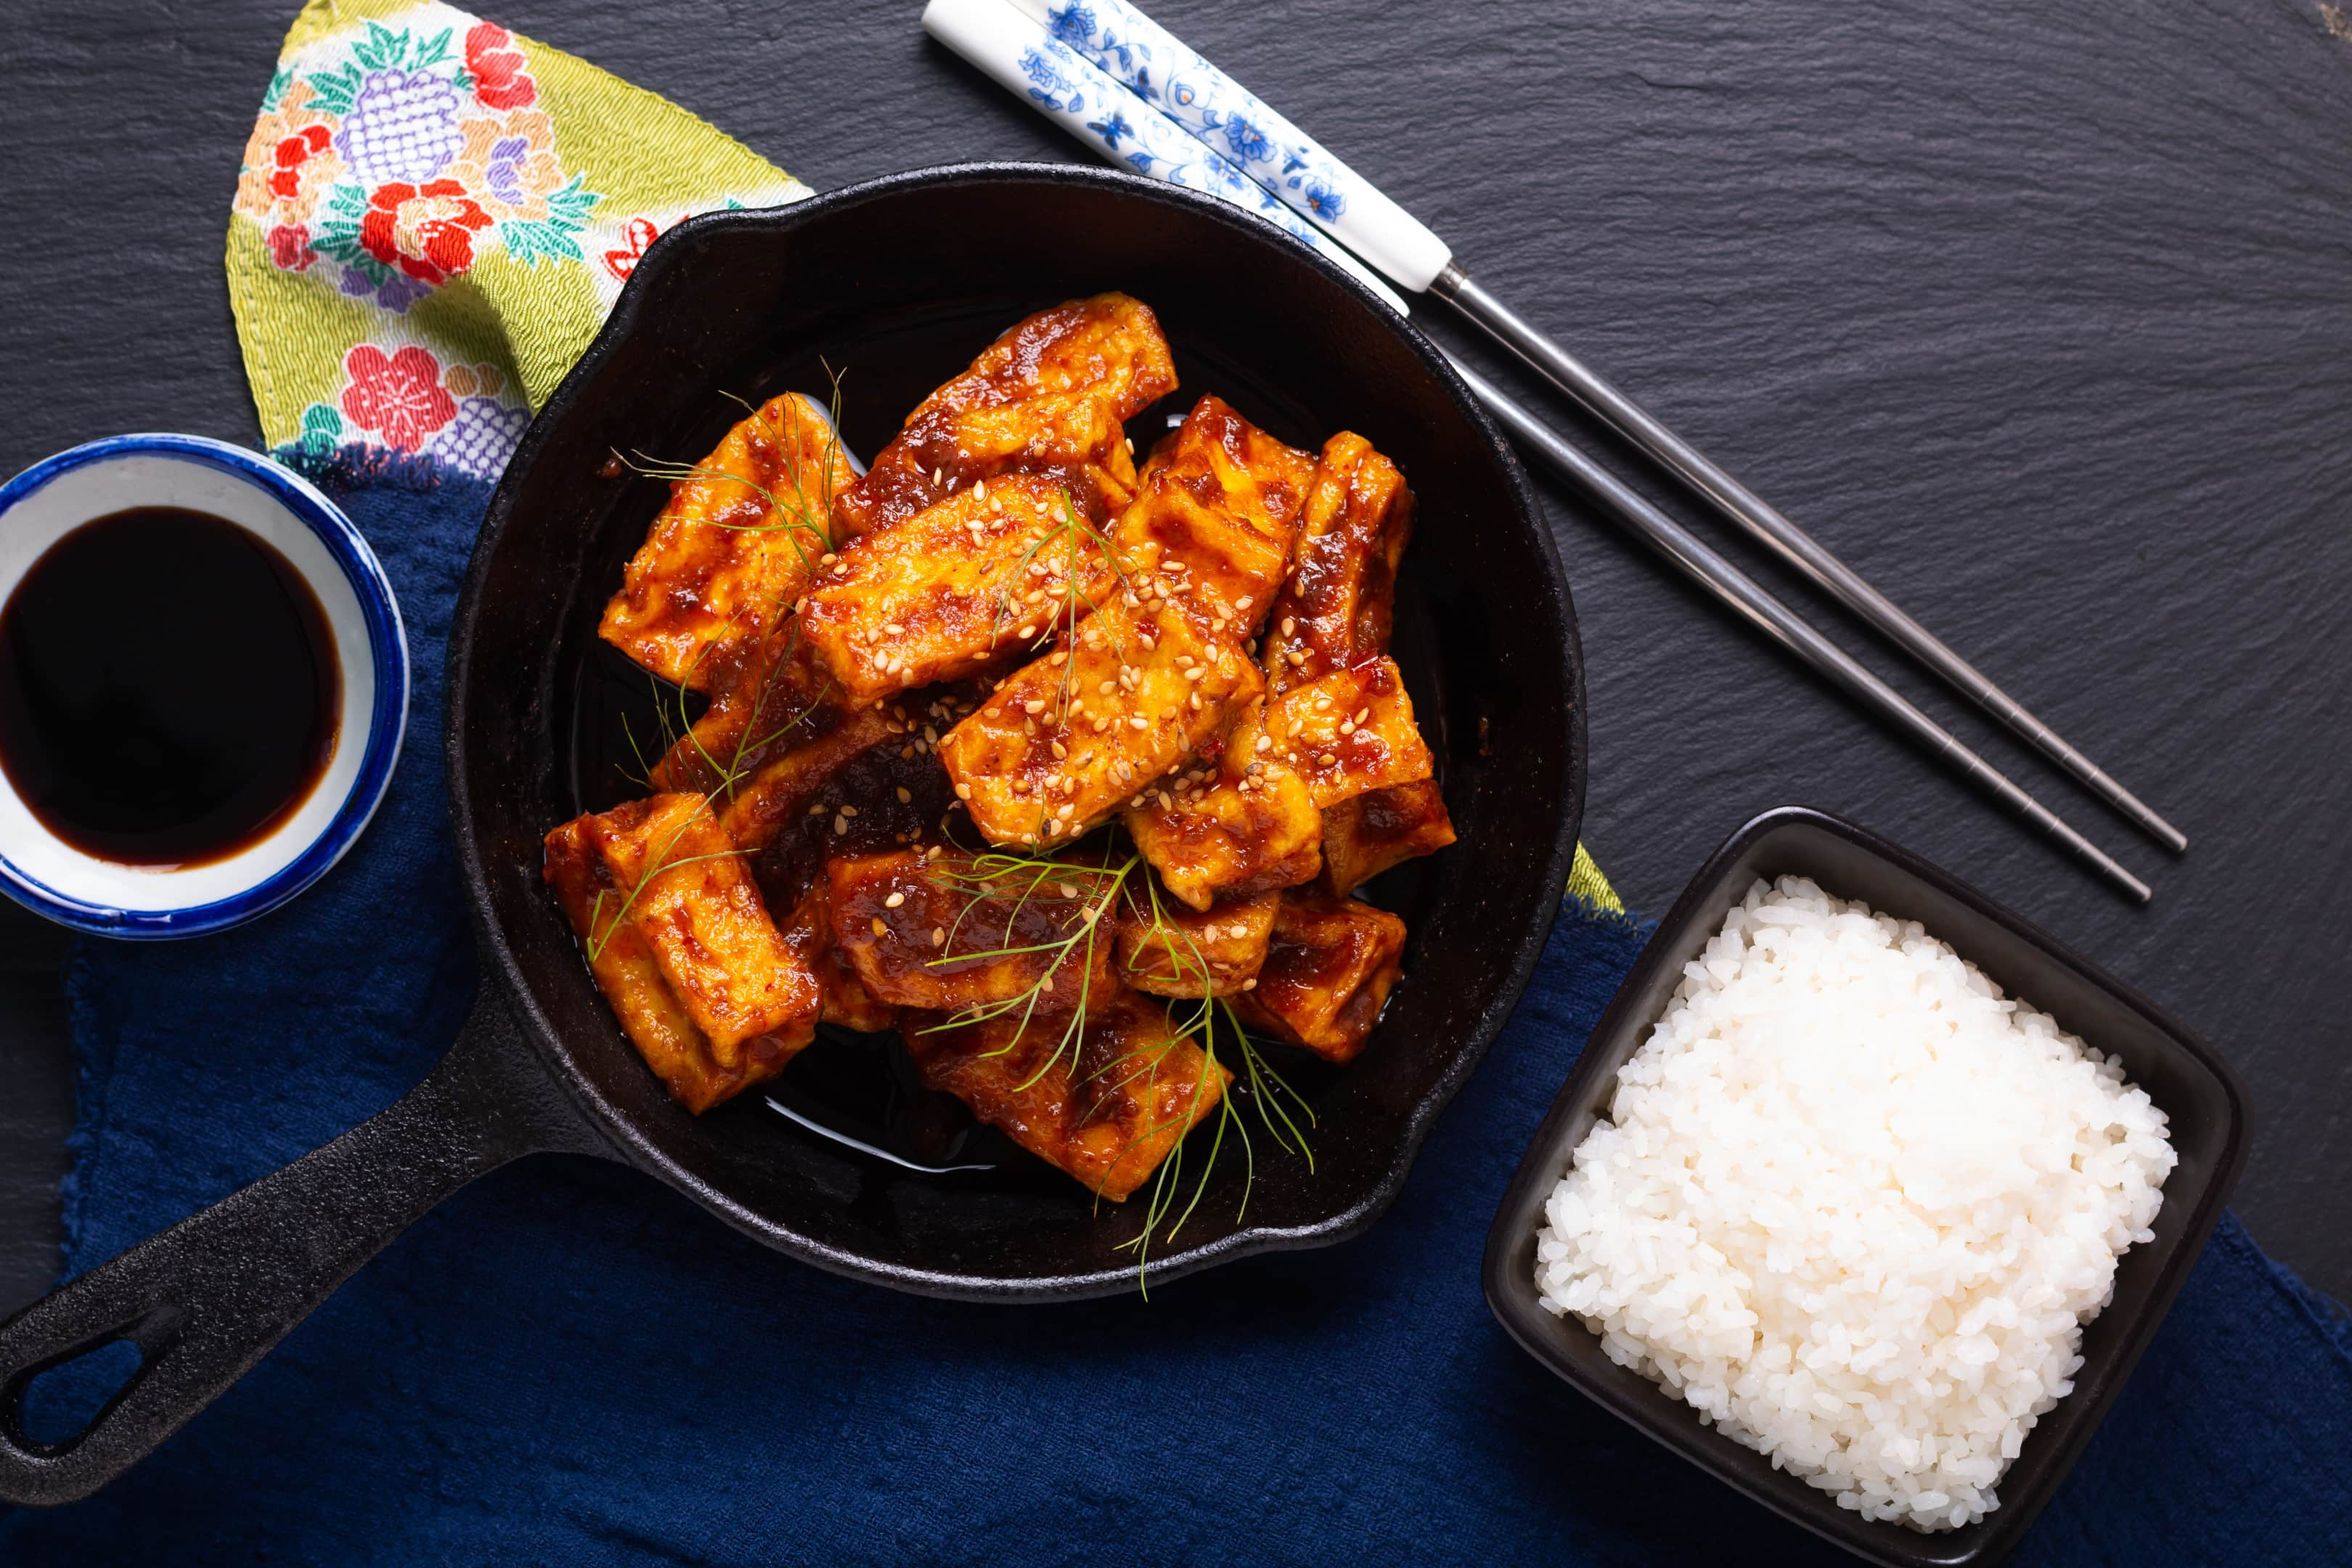 Homemade stir fried tofu with spicy chili sauce served with rice